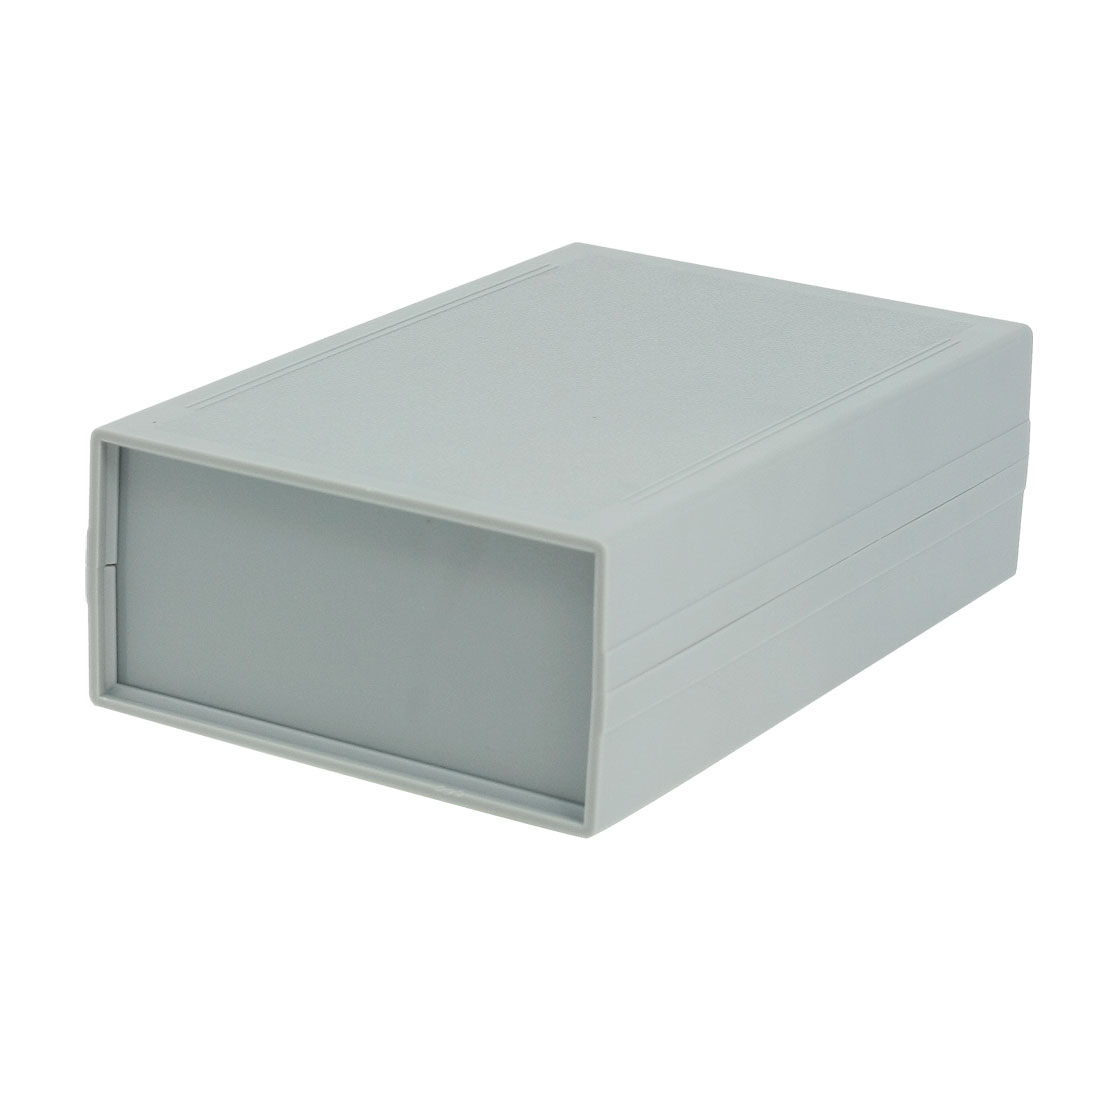 190mm x 120mm x 60mm Plastic Enclosure Case DIY Junction Box